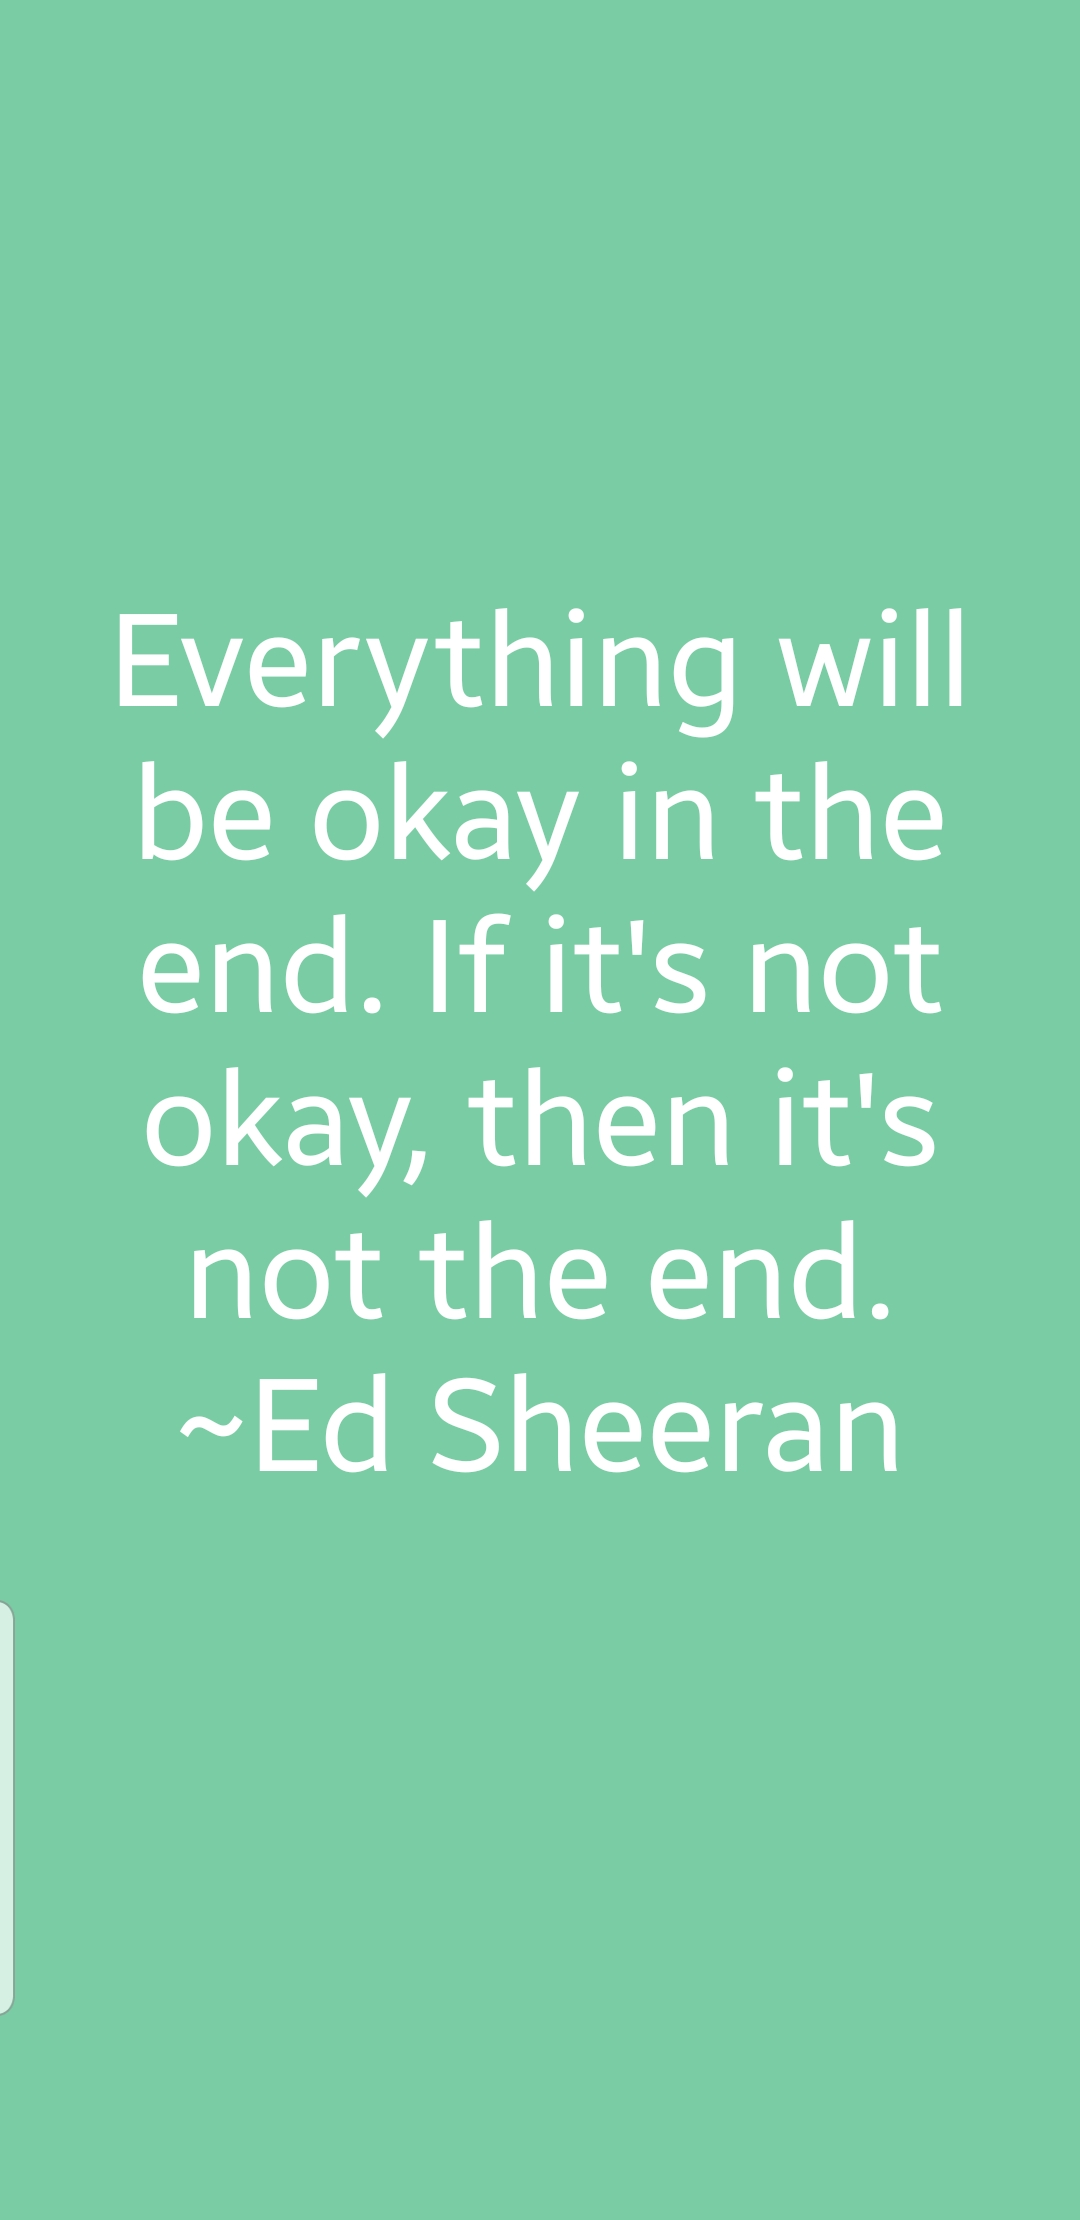 [image] take this Ed Sheeran quote.